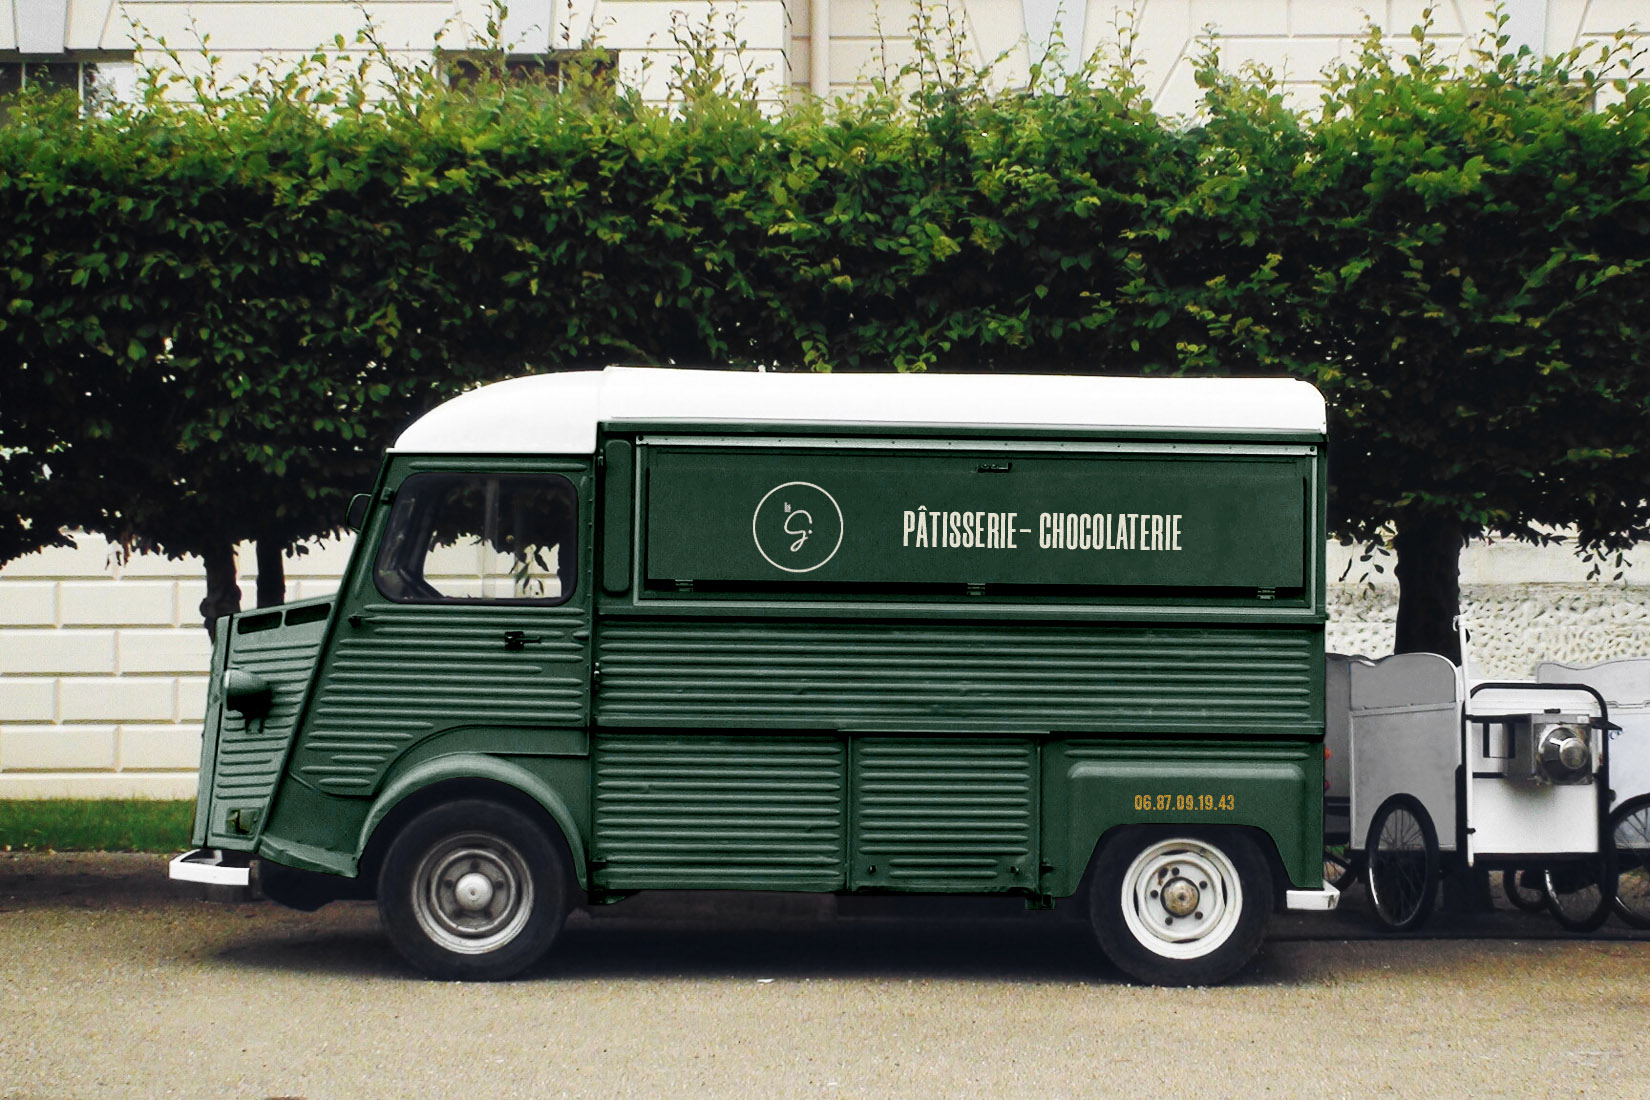 TRUCK-CAMION-MARCHES-IDENTITE-PATISSERIE